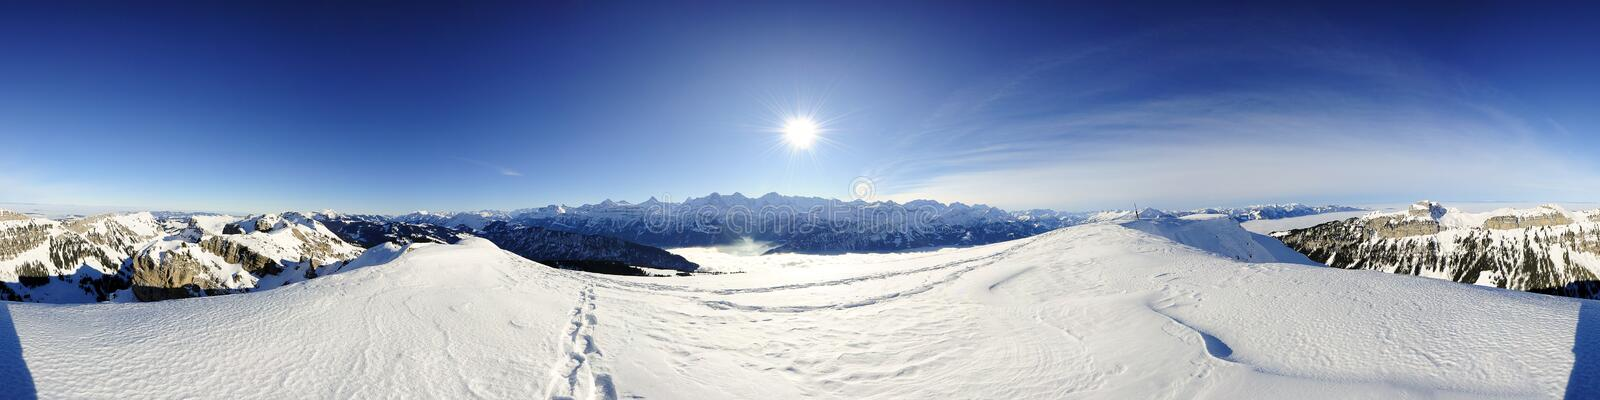 360 degree panorama of swiss mountains royalty free stock photography